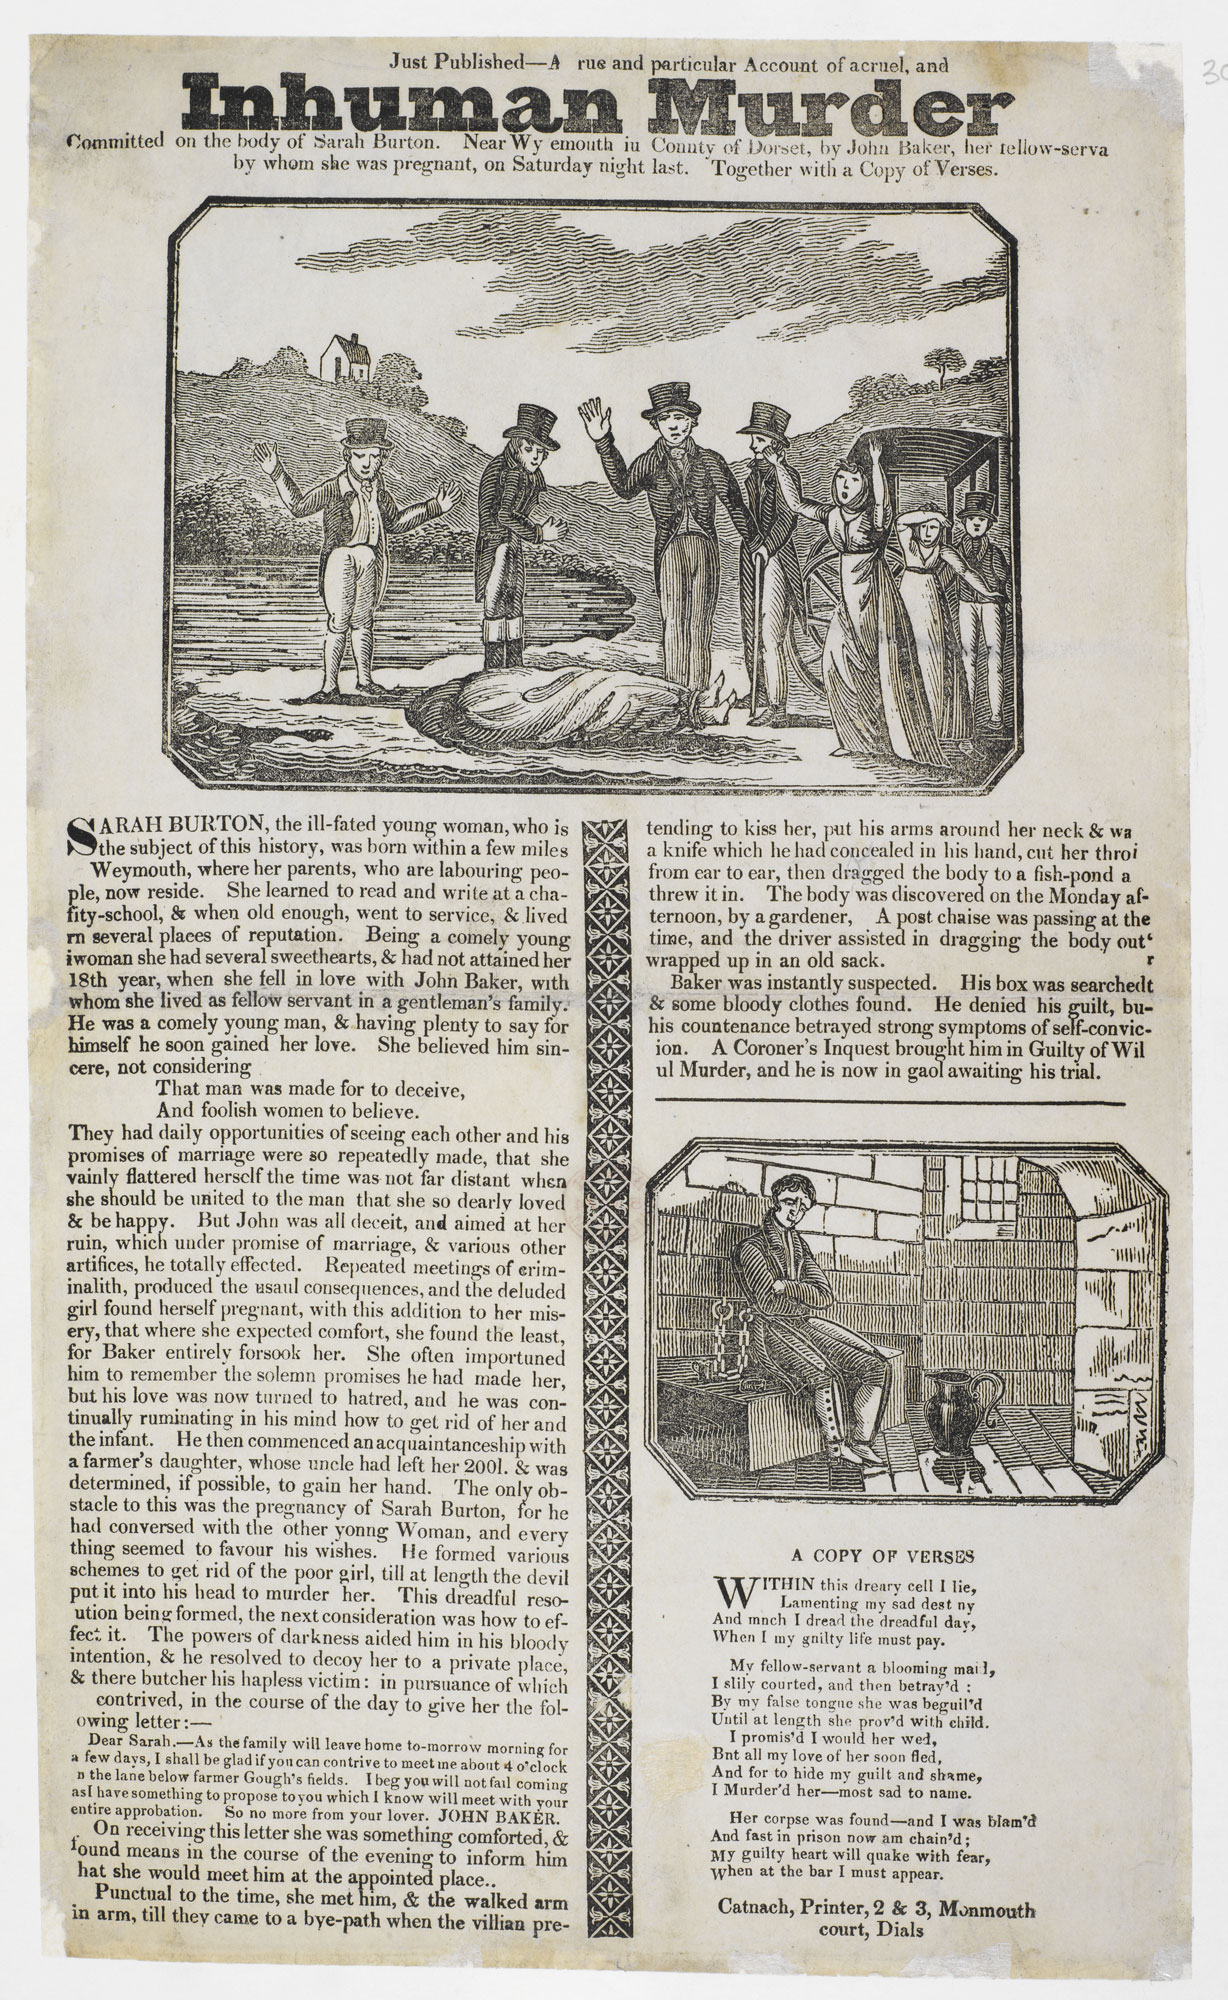 Broadside: Account of a cruel and inhuman murder [page: single sheet]